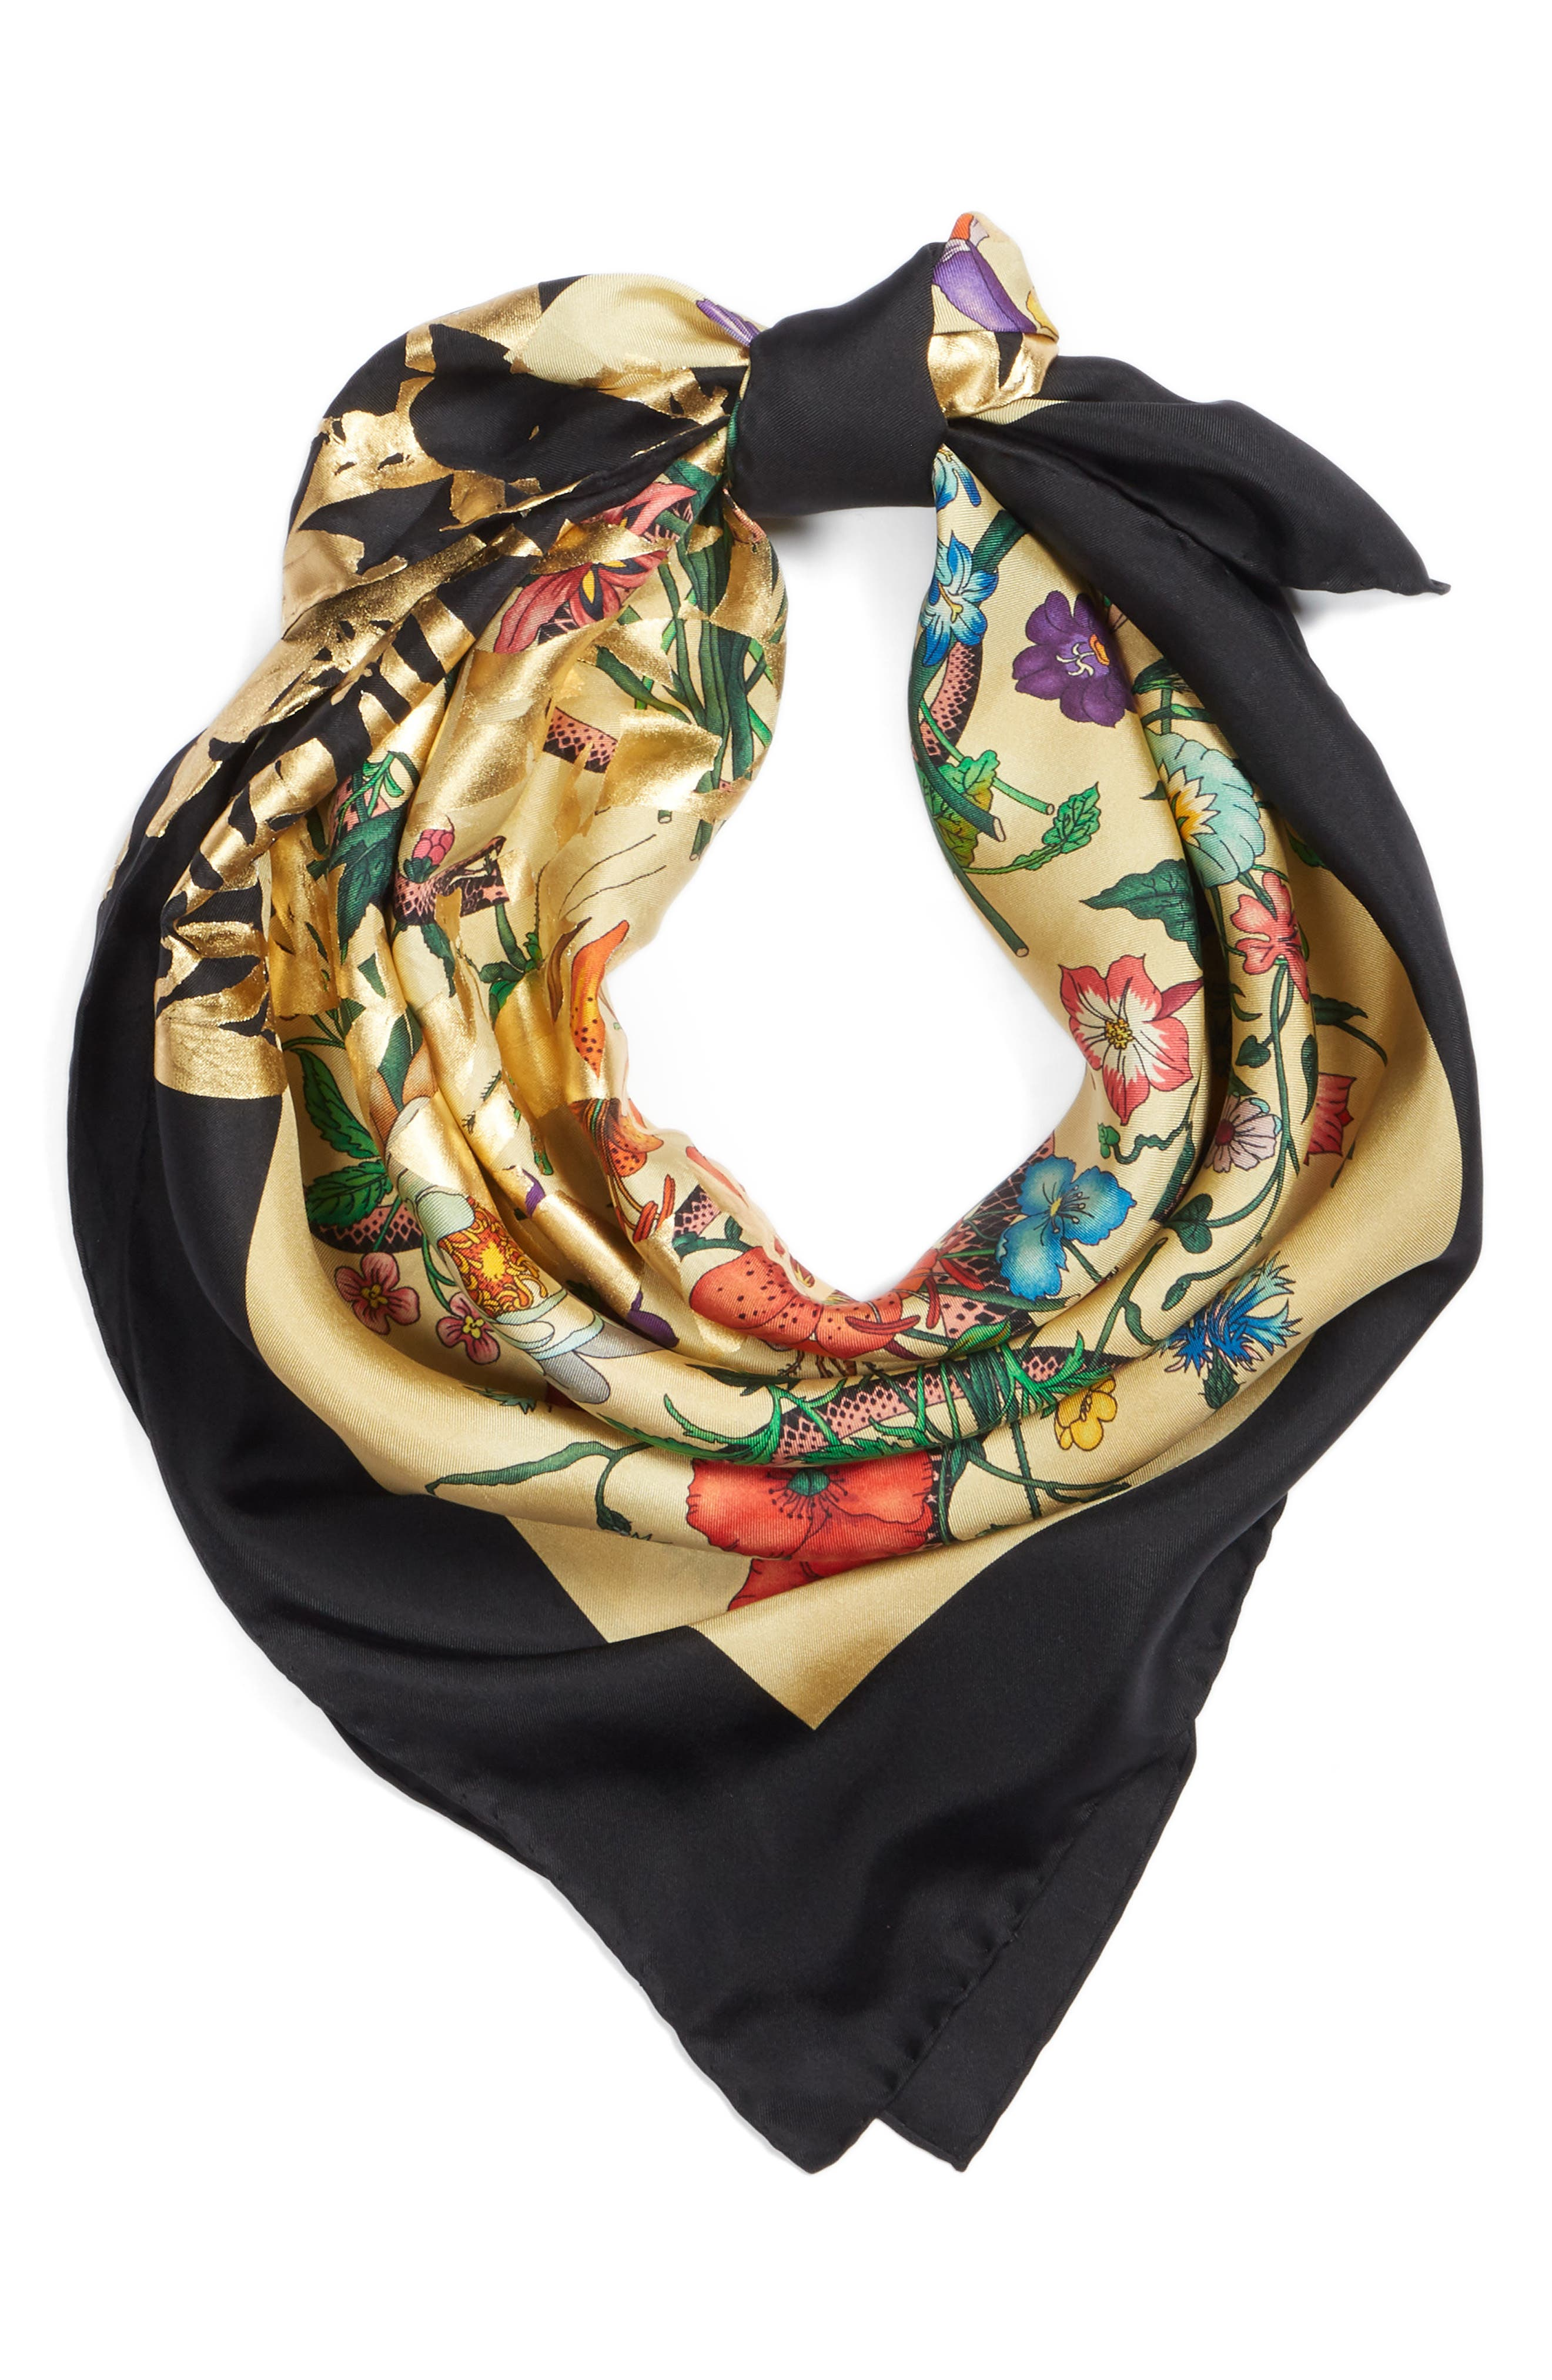 Gold Snake Foulard Silk Scarf,                             Alternate thumbnail 3, color,                             Ivory/ Yellow